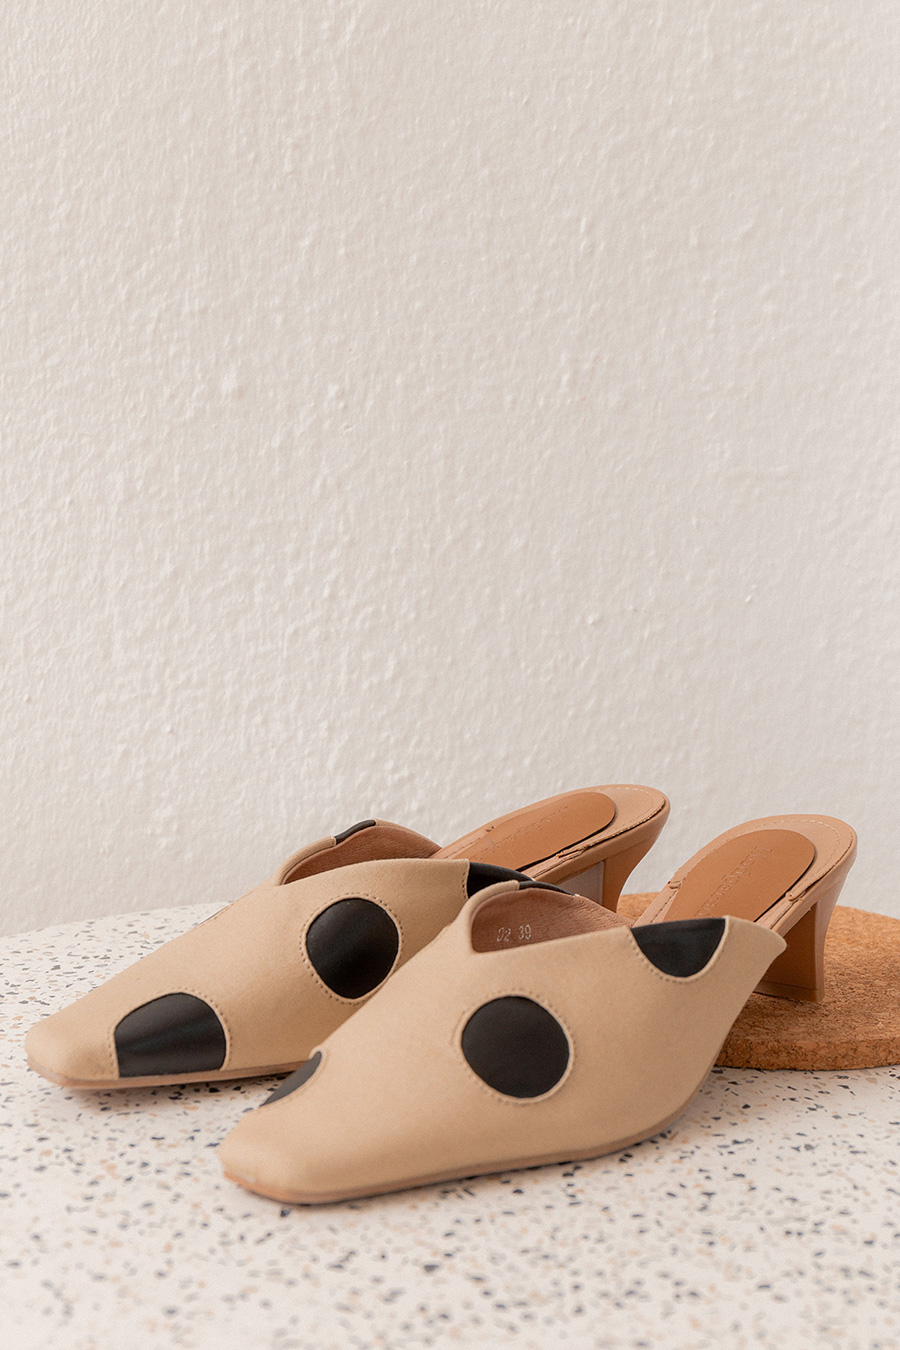 PENNY SHOES - DOTTIE